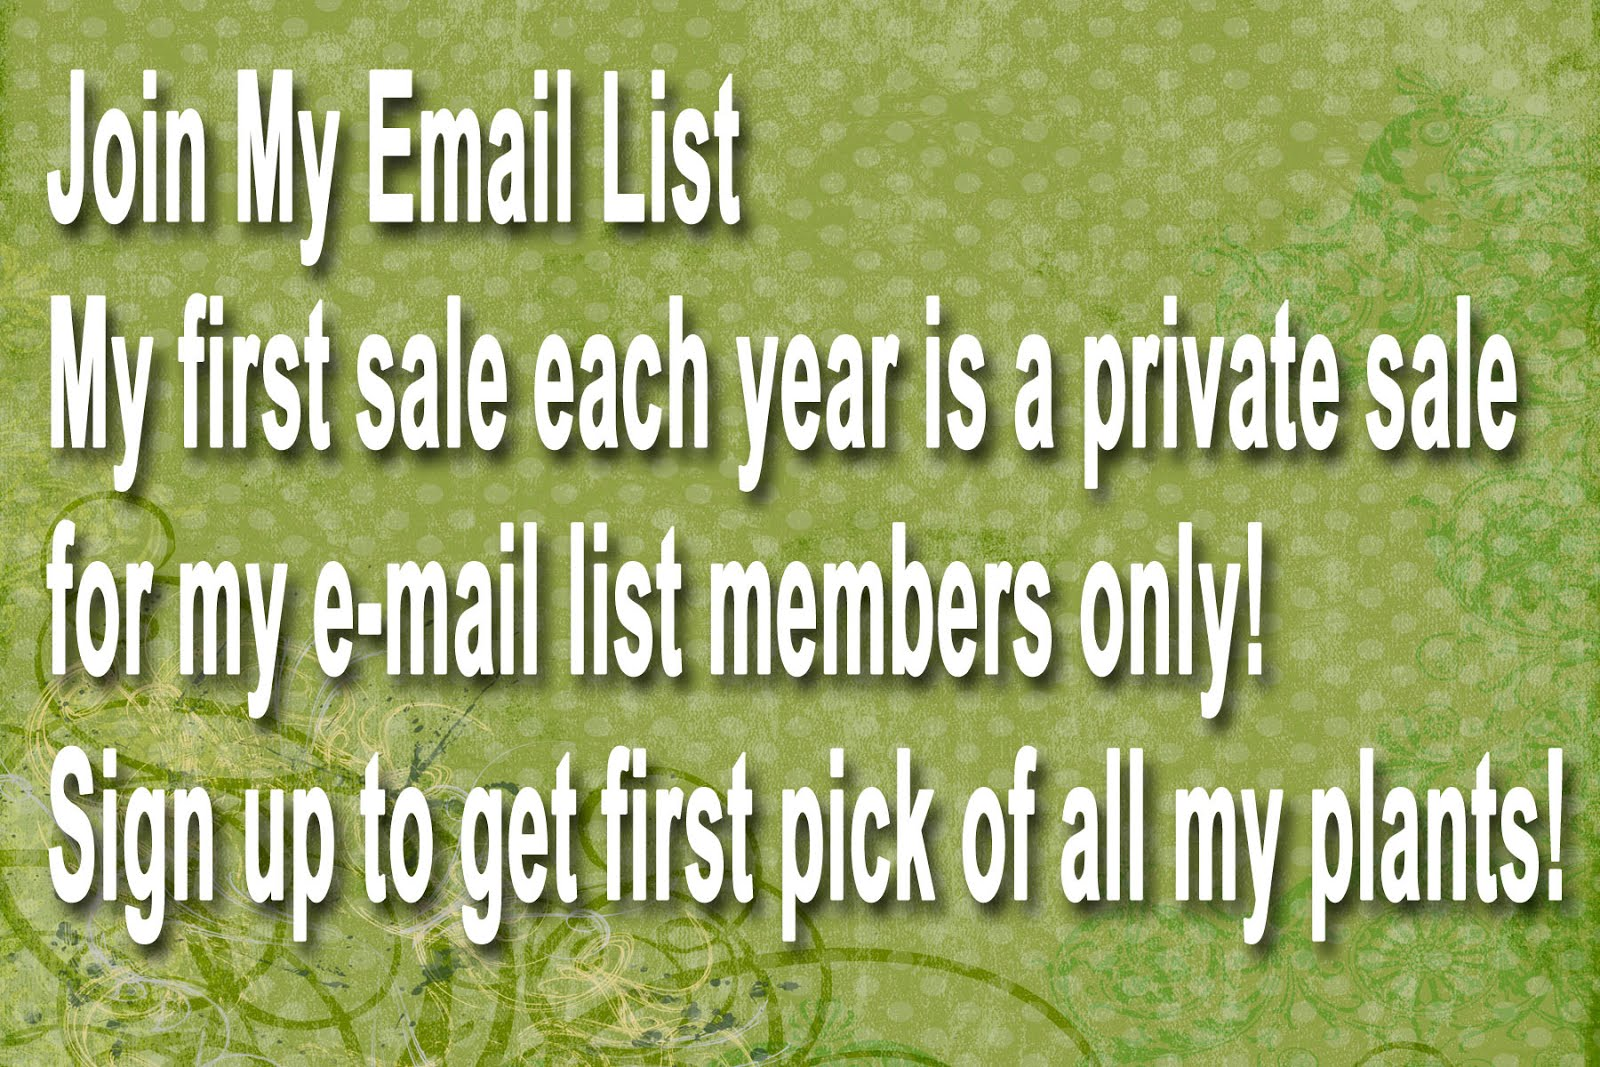 Mimi's Email List